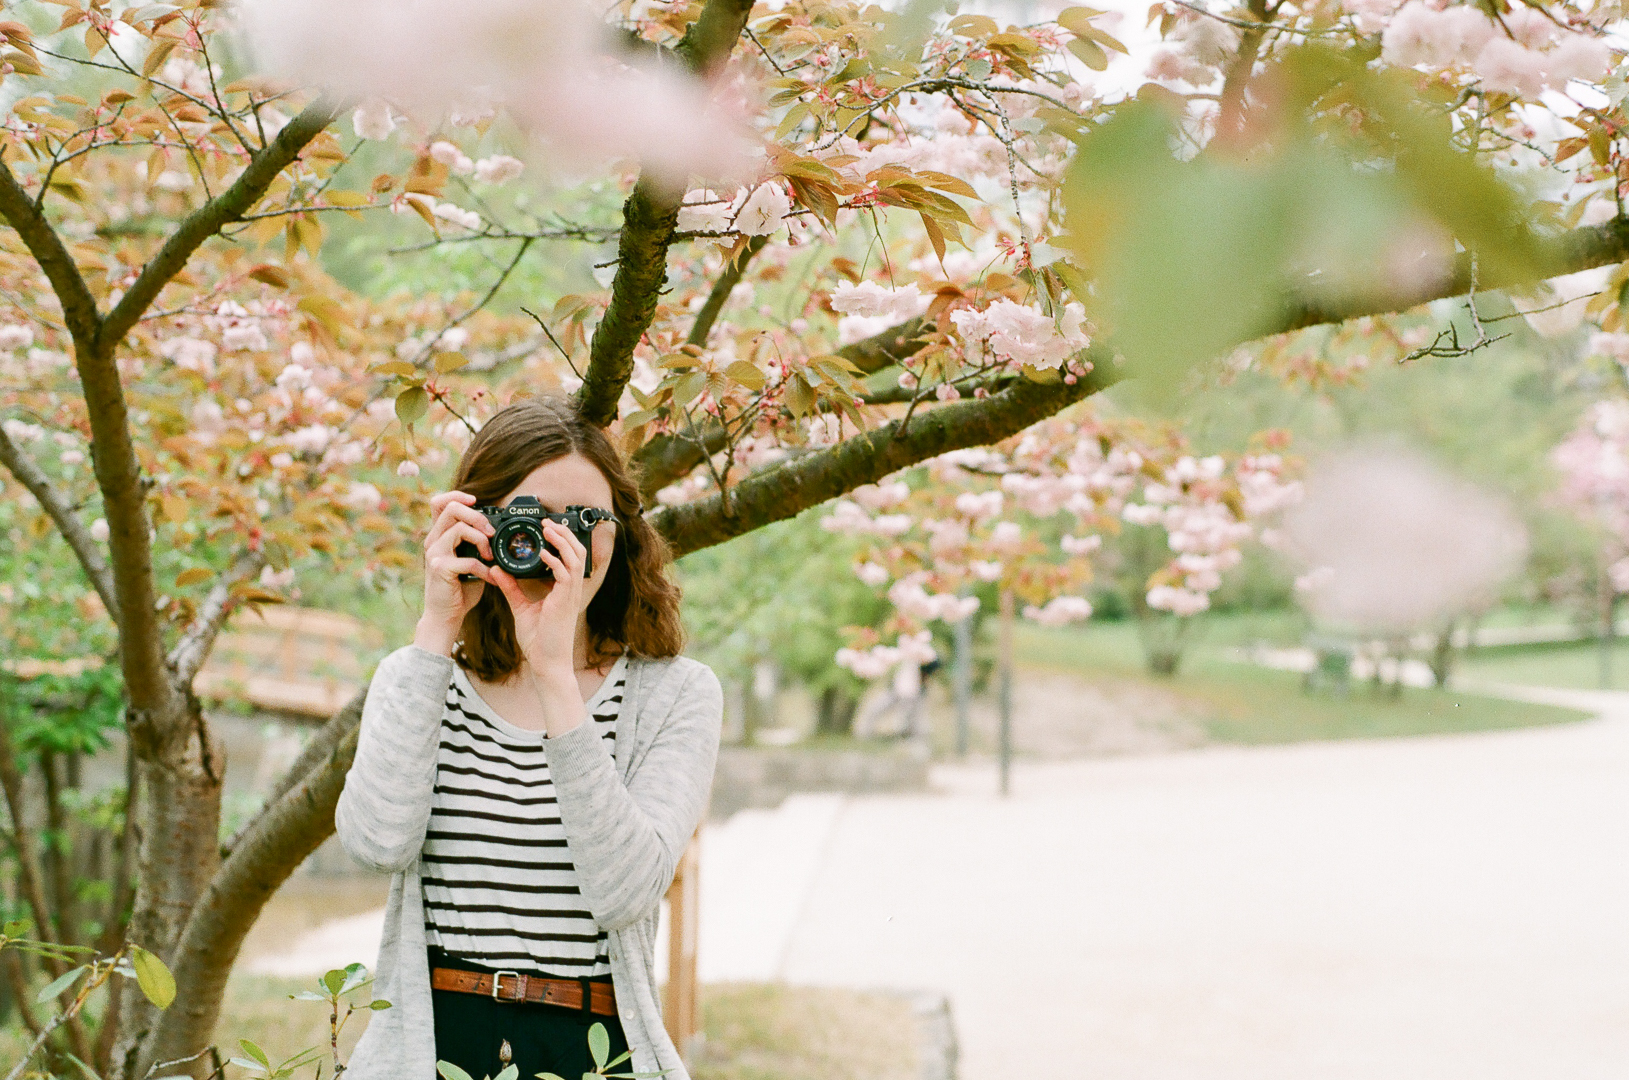 Spring through an analog lens